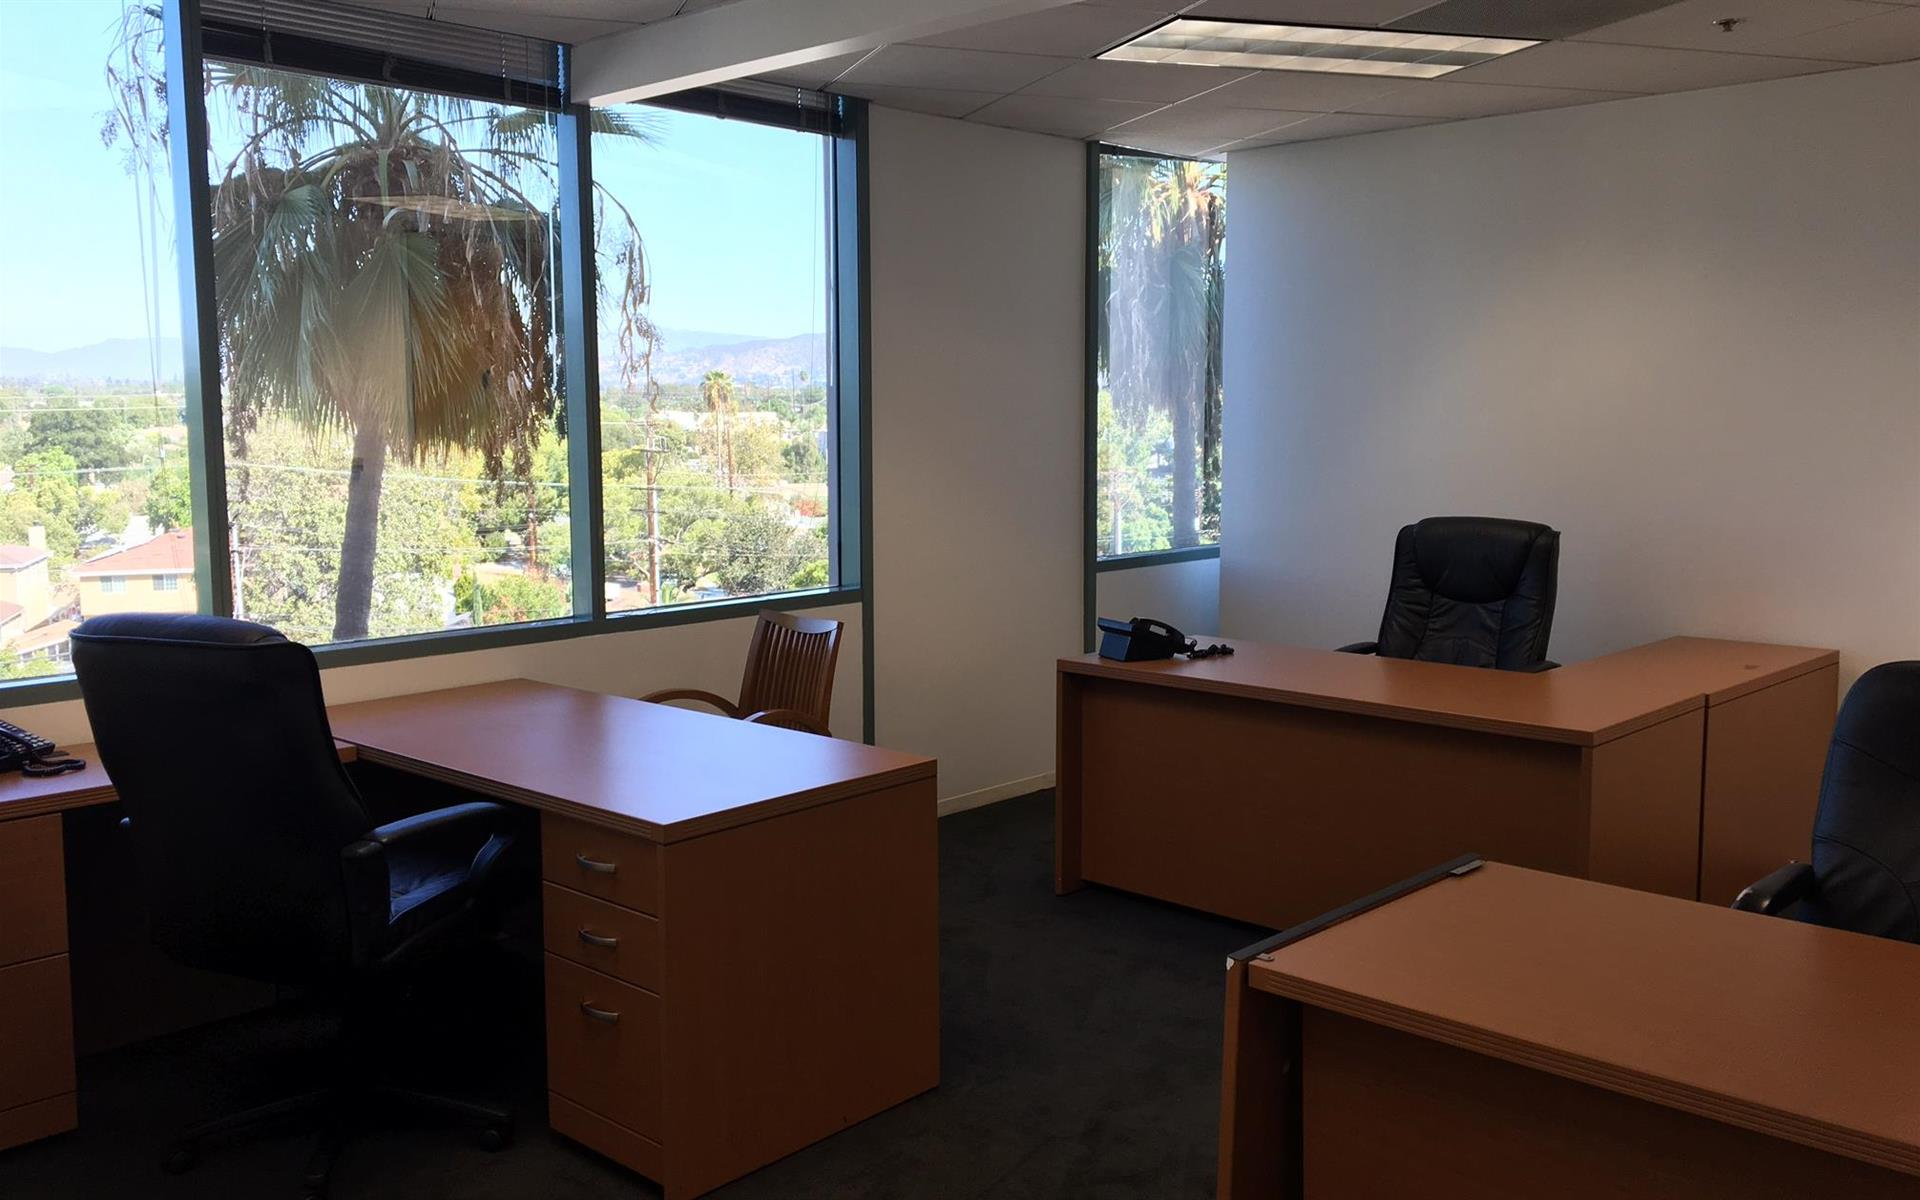 (BUR) Burbank Media District - Up to 6 Person Office